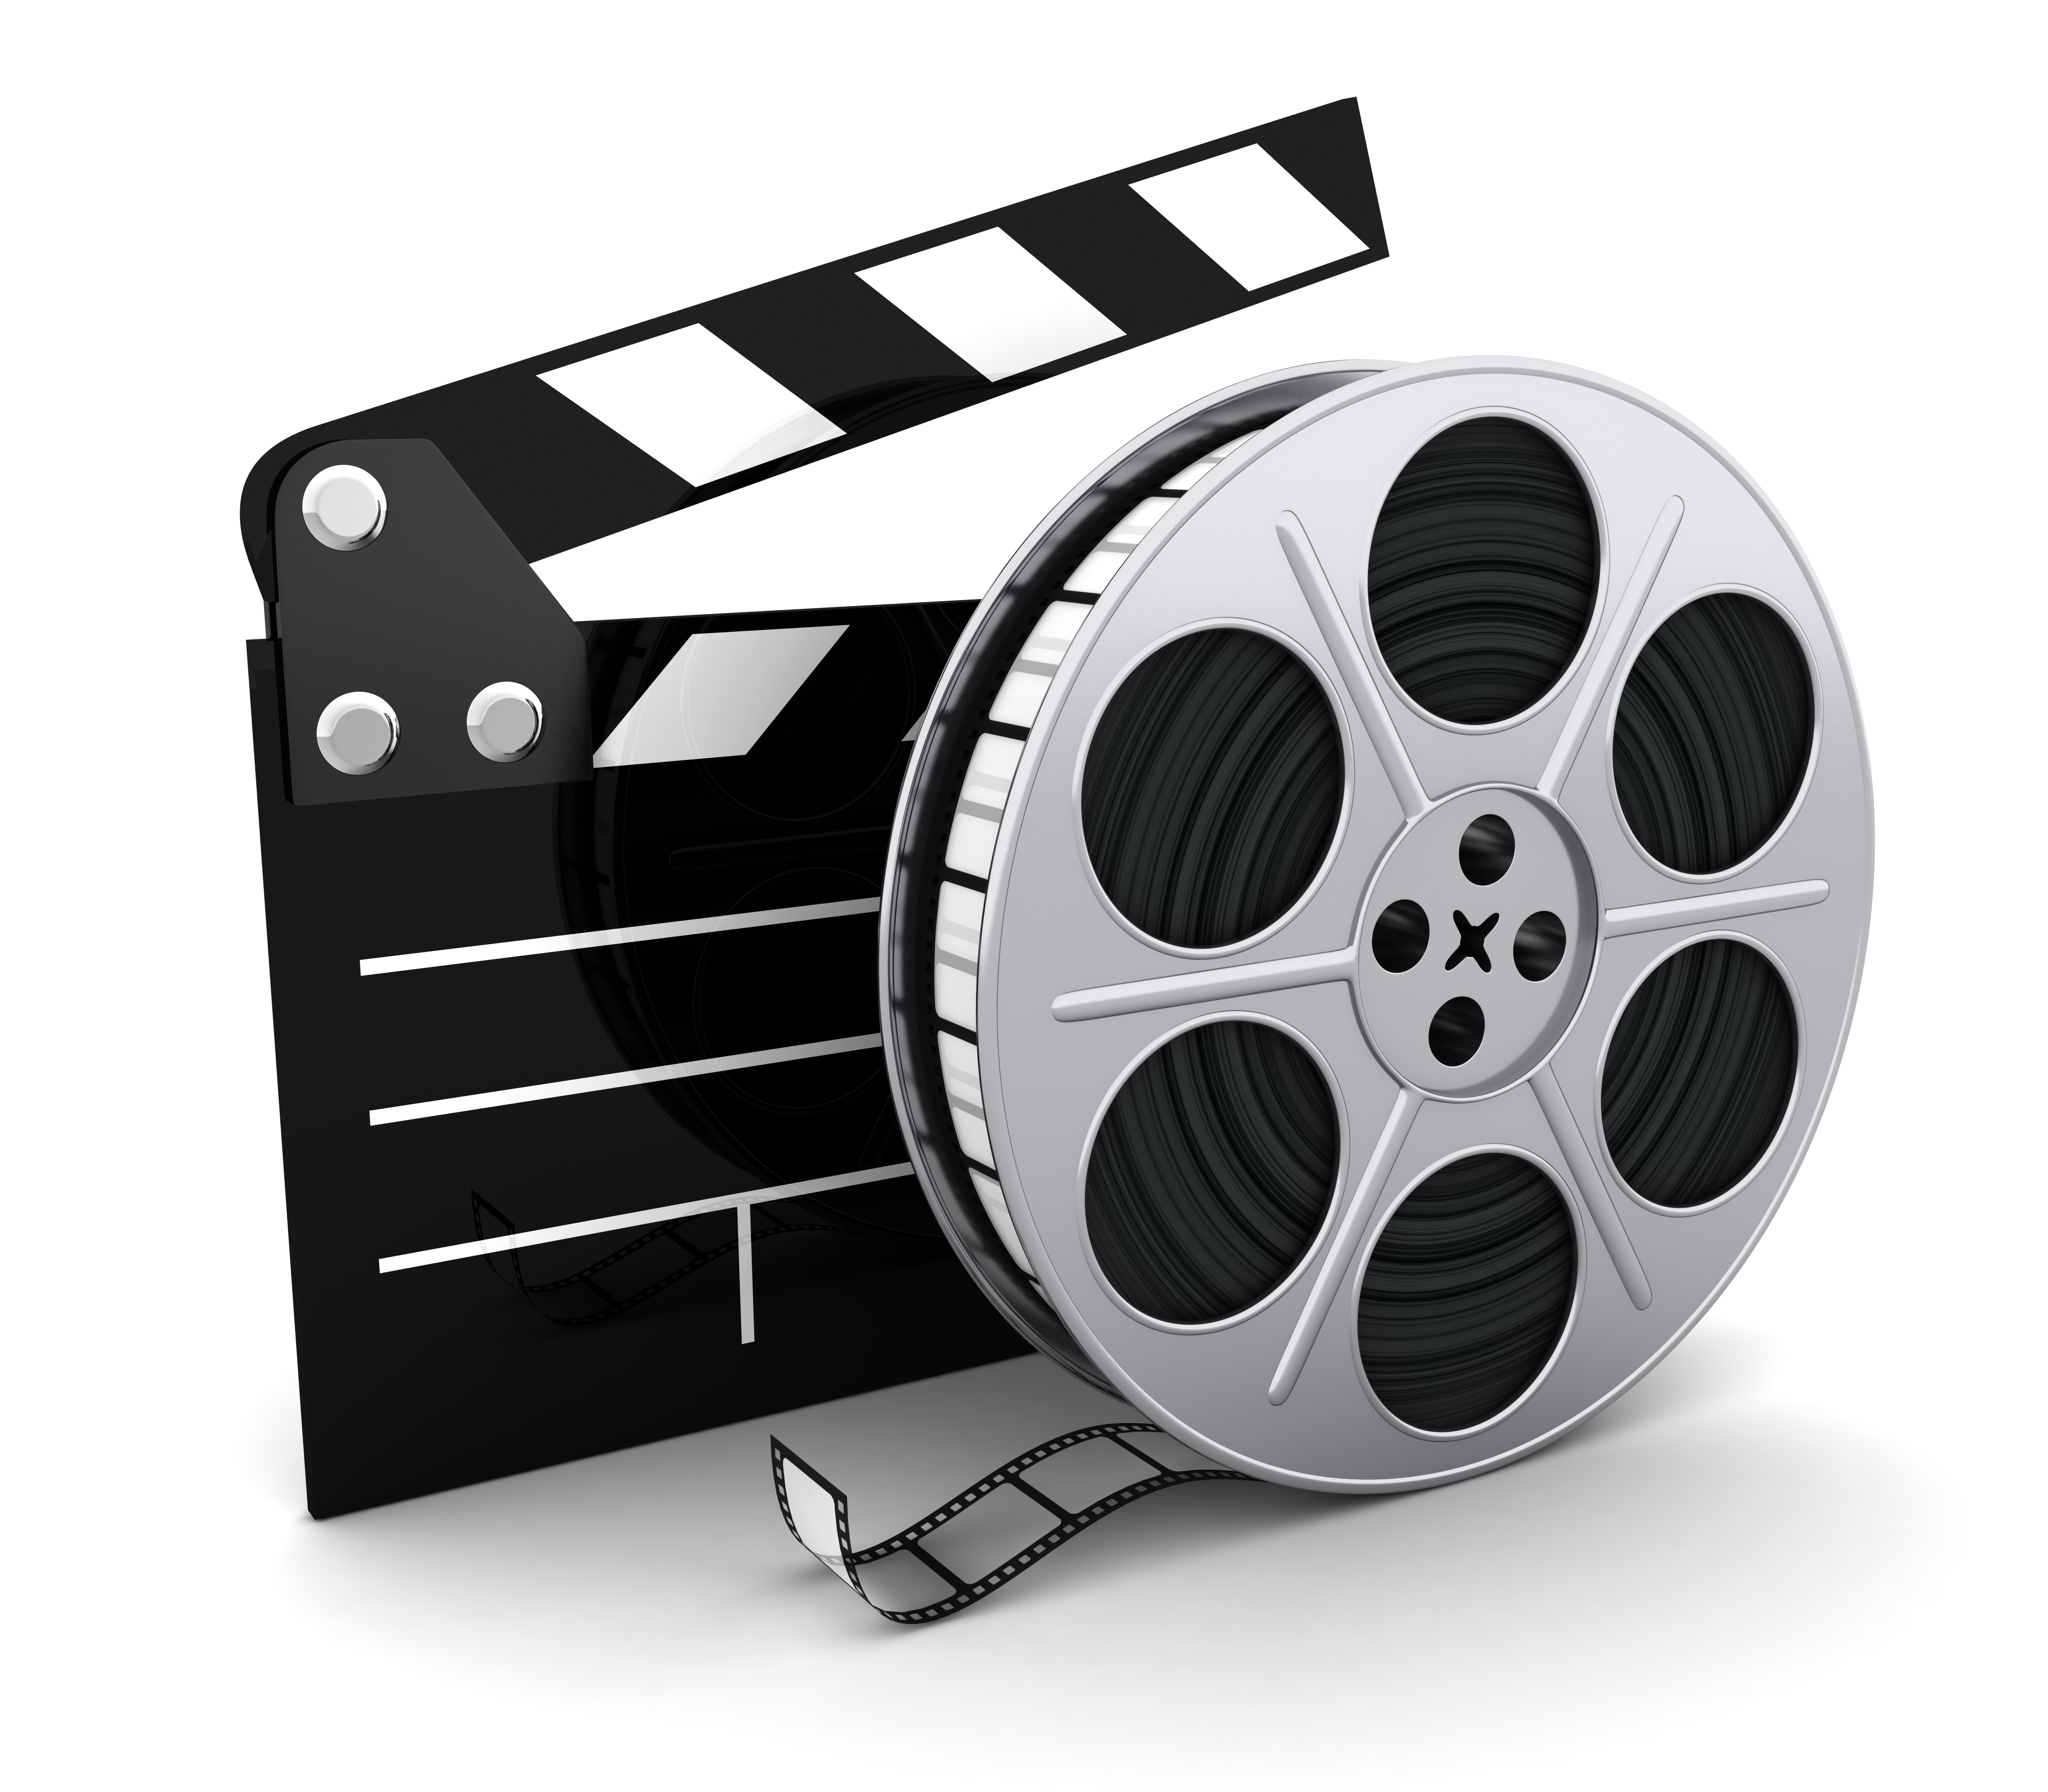 Top Fictional Monologues Of A - Movie Reel Clipart